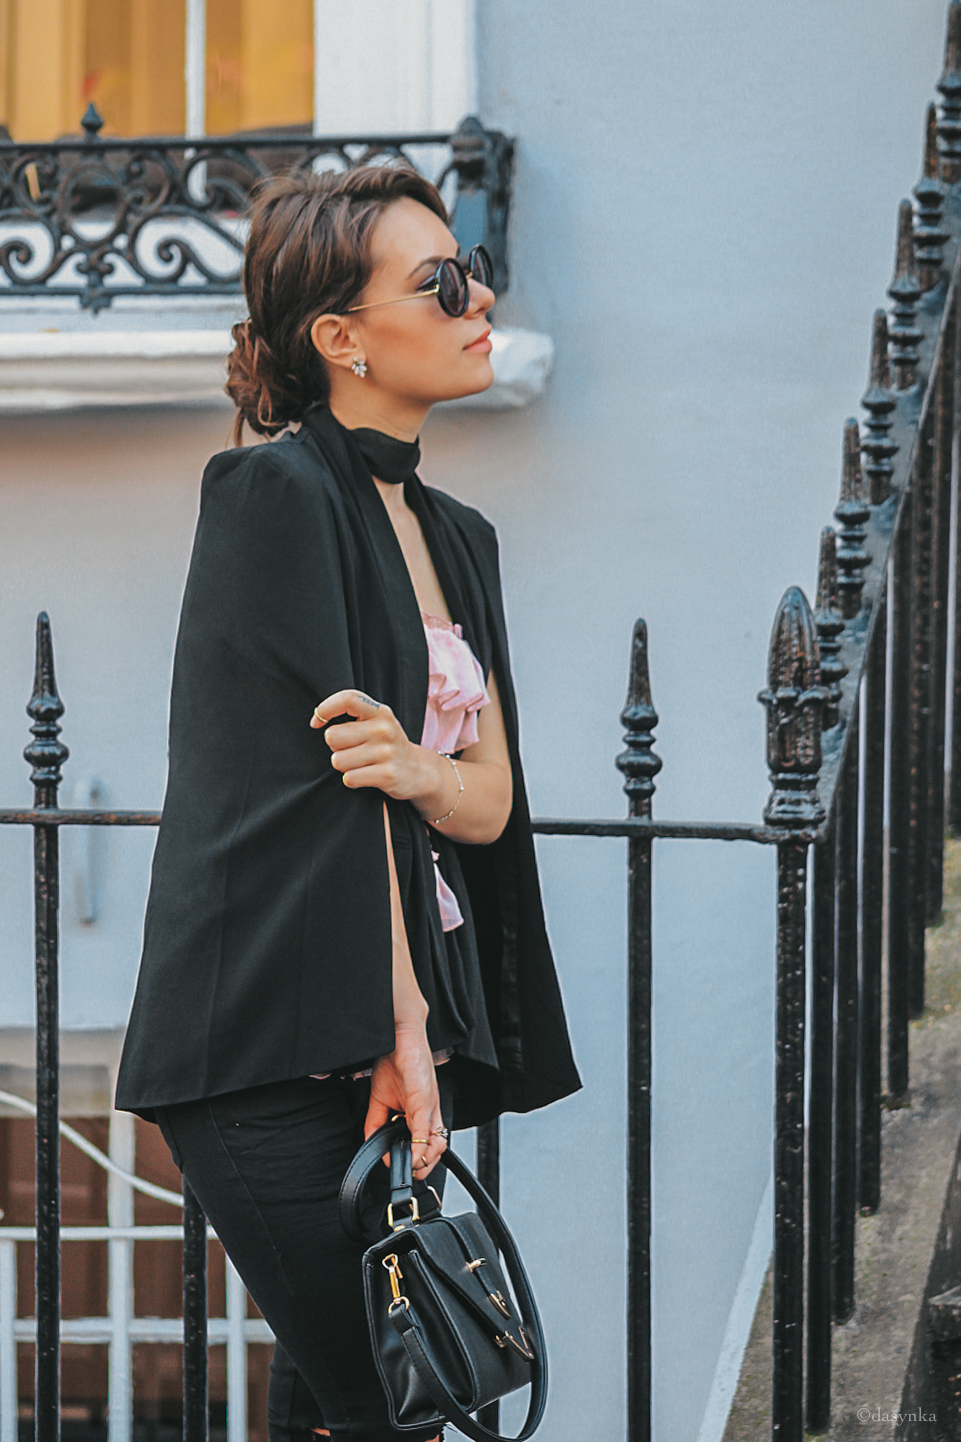 dasynka-fashion-blogger-notting-hill-london-sunnies-houses-pink-bag-black-choker-colors-pinterest-blazer-pink-top-pants-bag